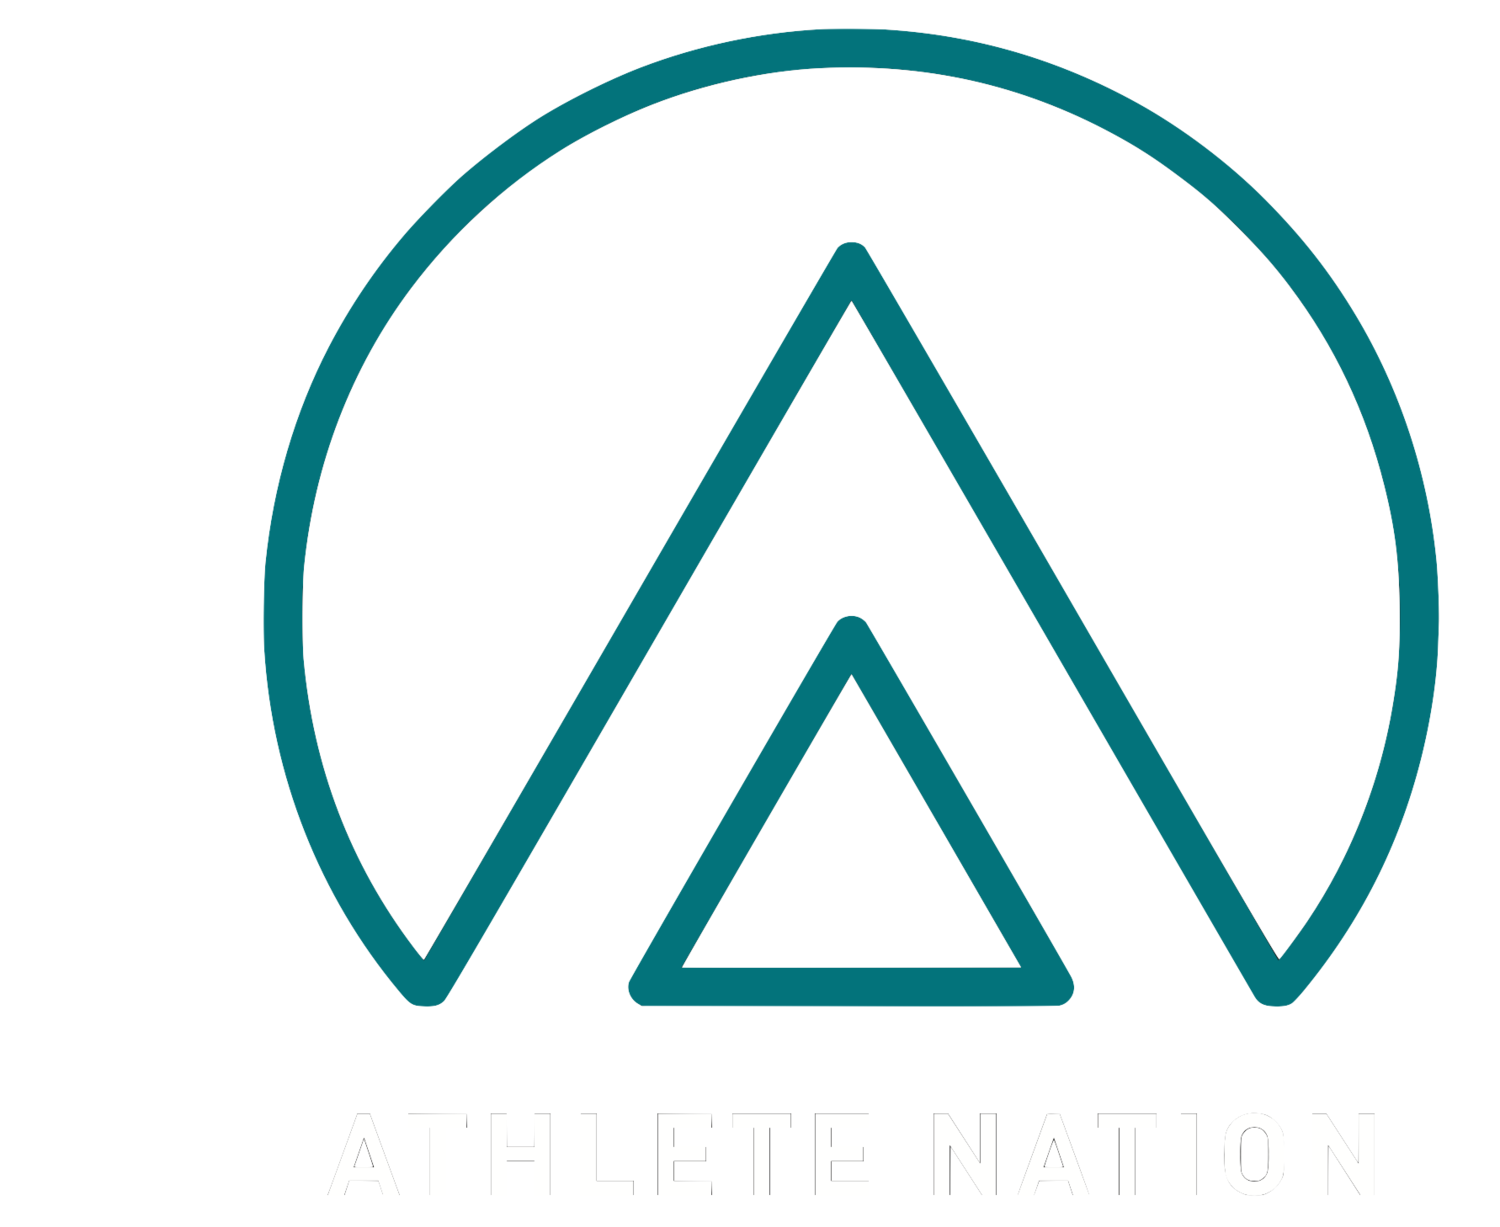 Athlete Nation